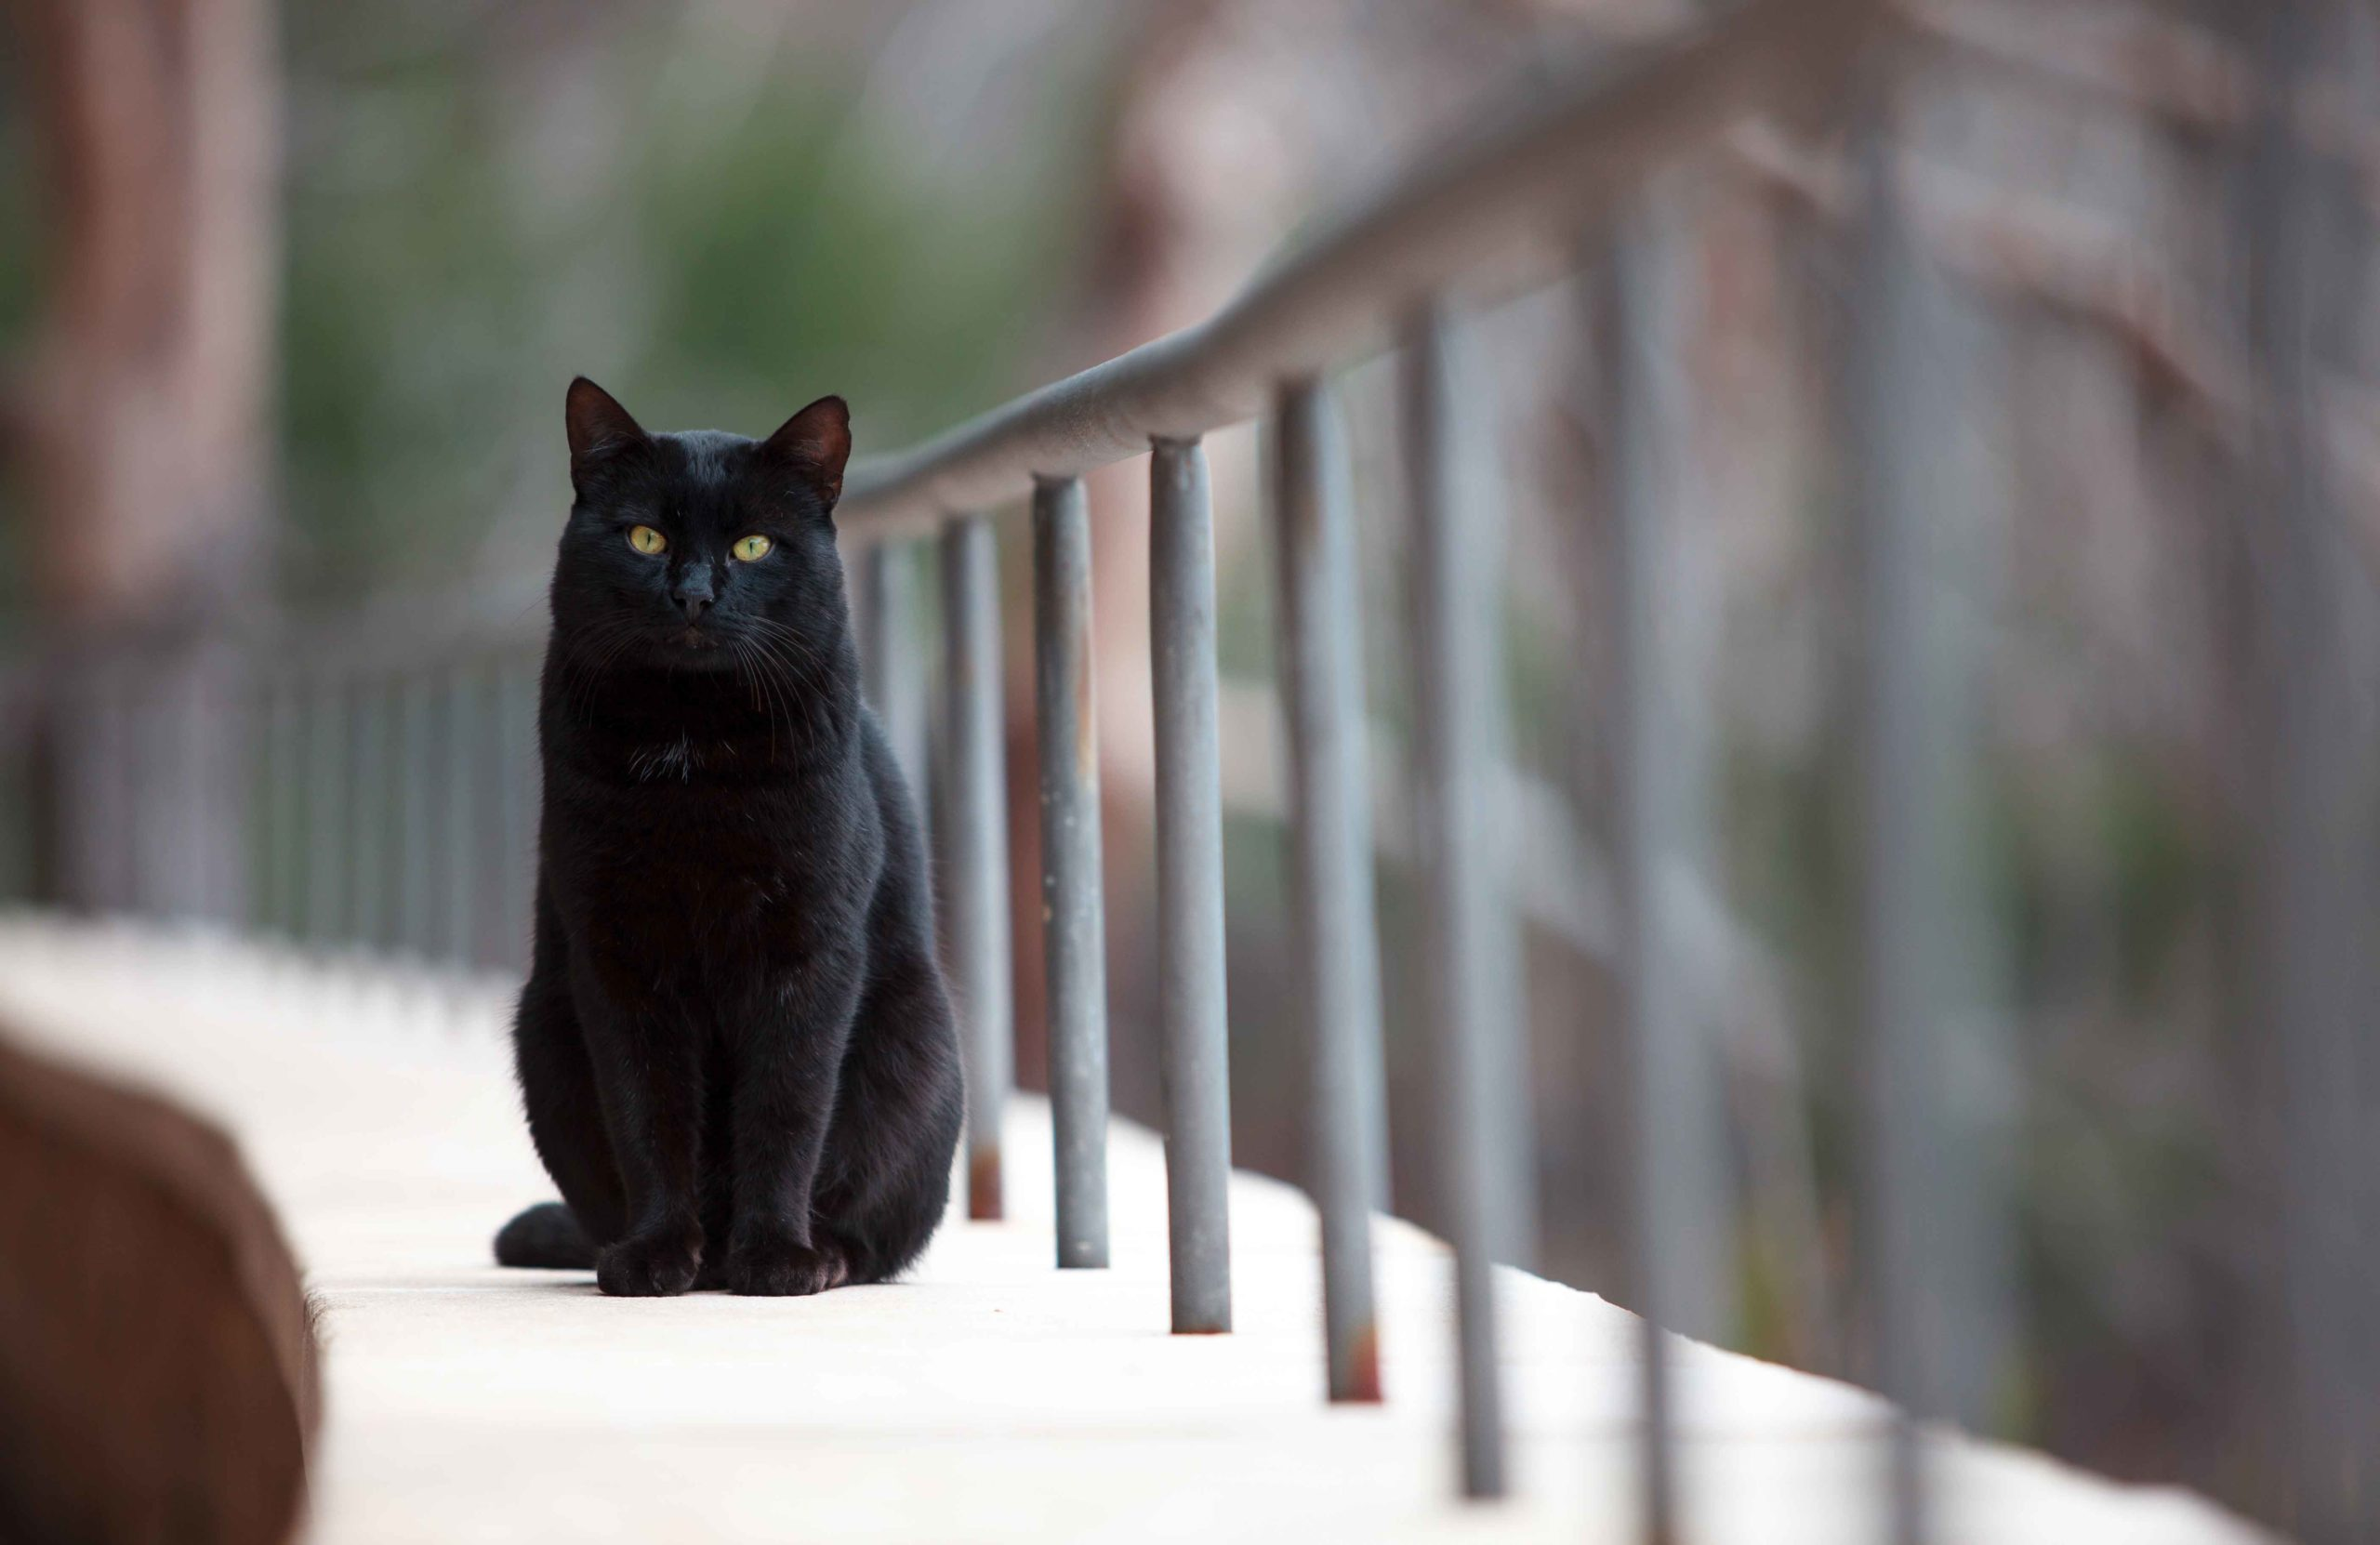 Black cats cause epidemics